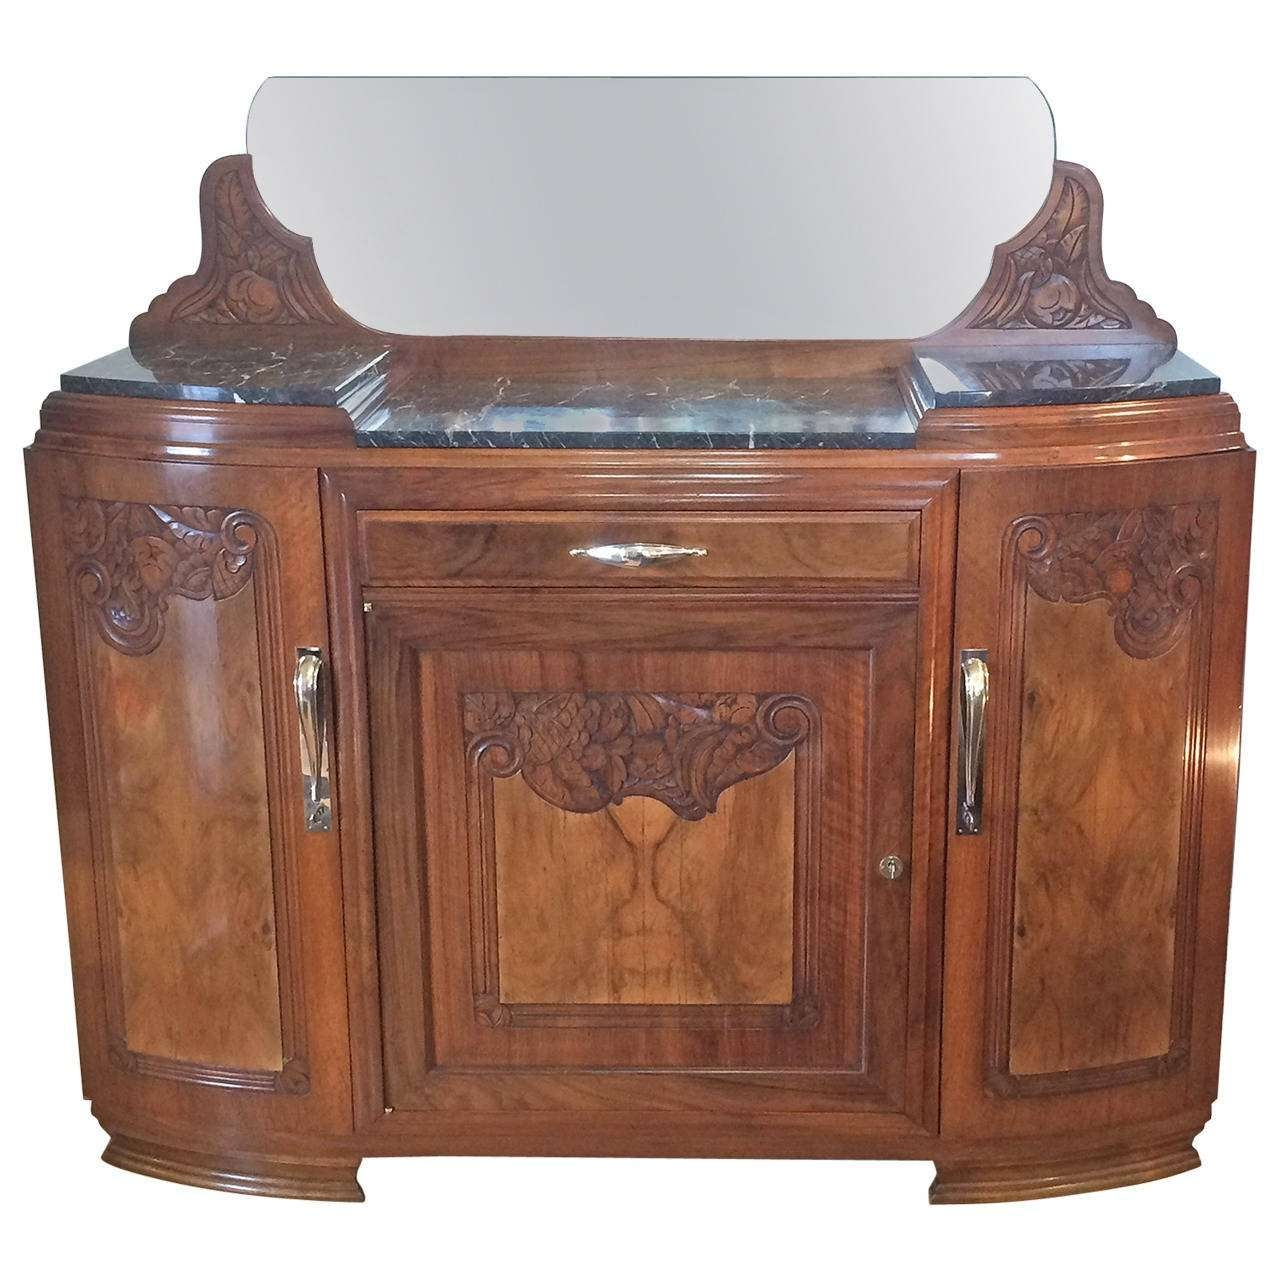 Art Deco French Walnut Sideboard With Marble Top At 1stdibs Inside Marble Top Sideboards (View 8 of 20)